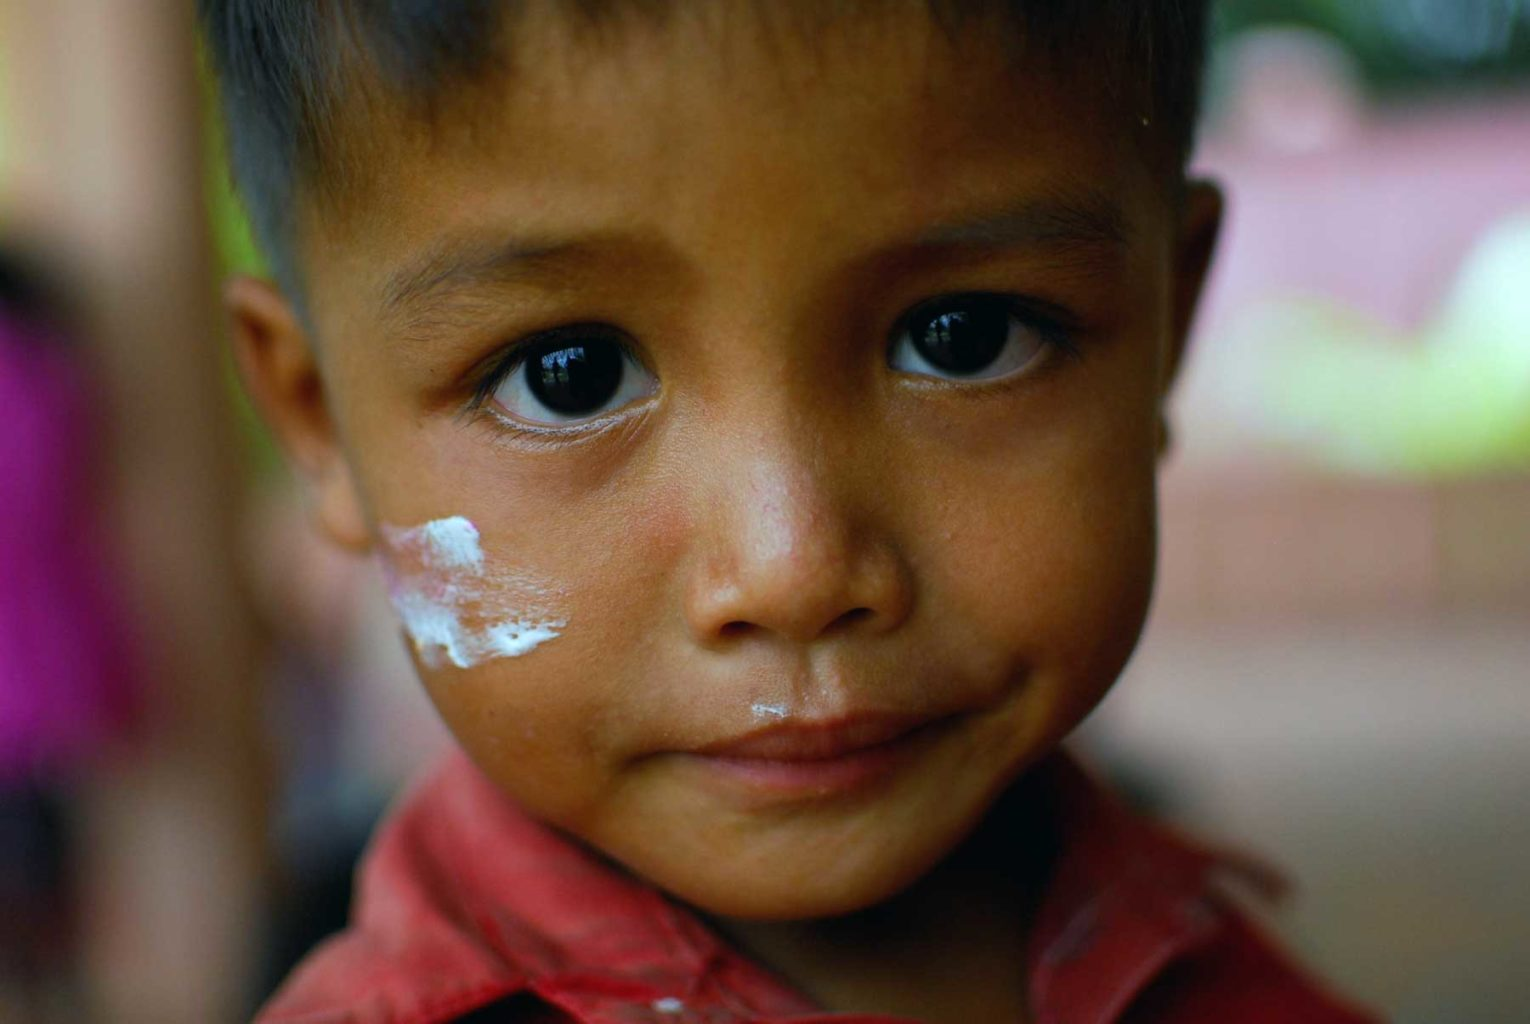 Little boy sponsoring child Cambodia orphans orphans of child abuse beautiful sad eyes humanitarian